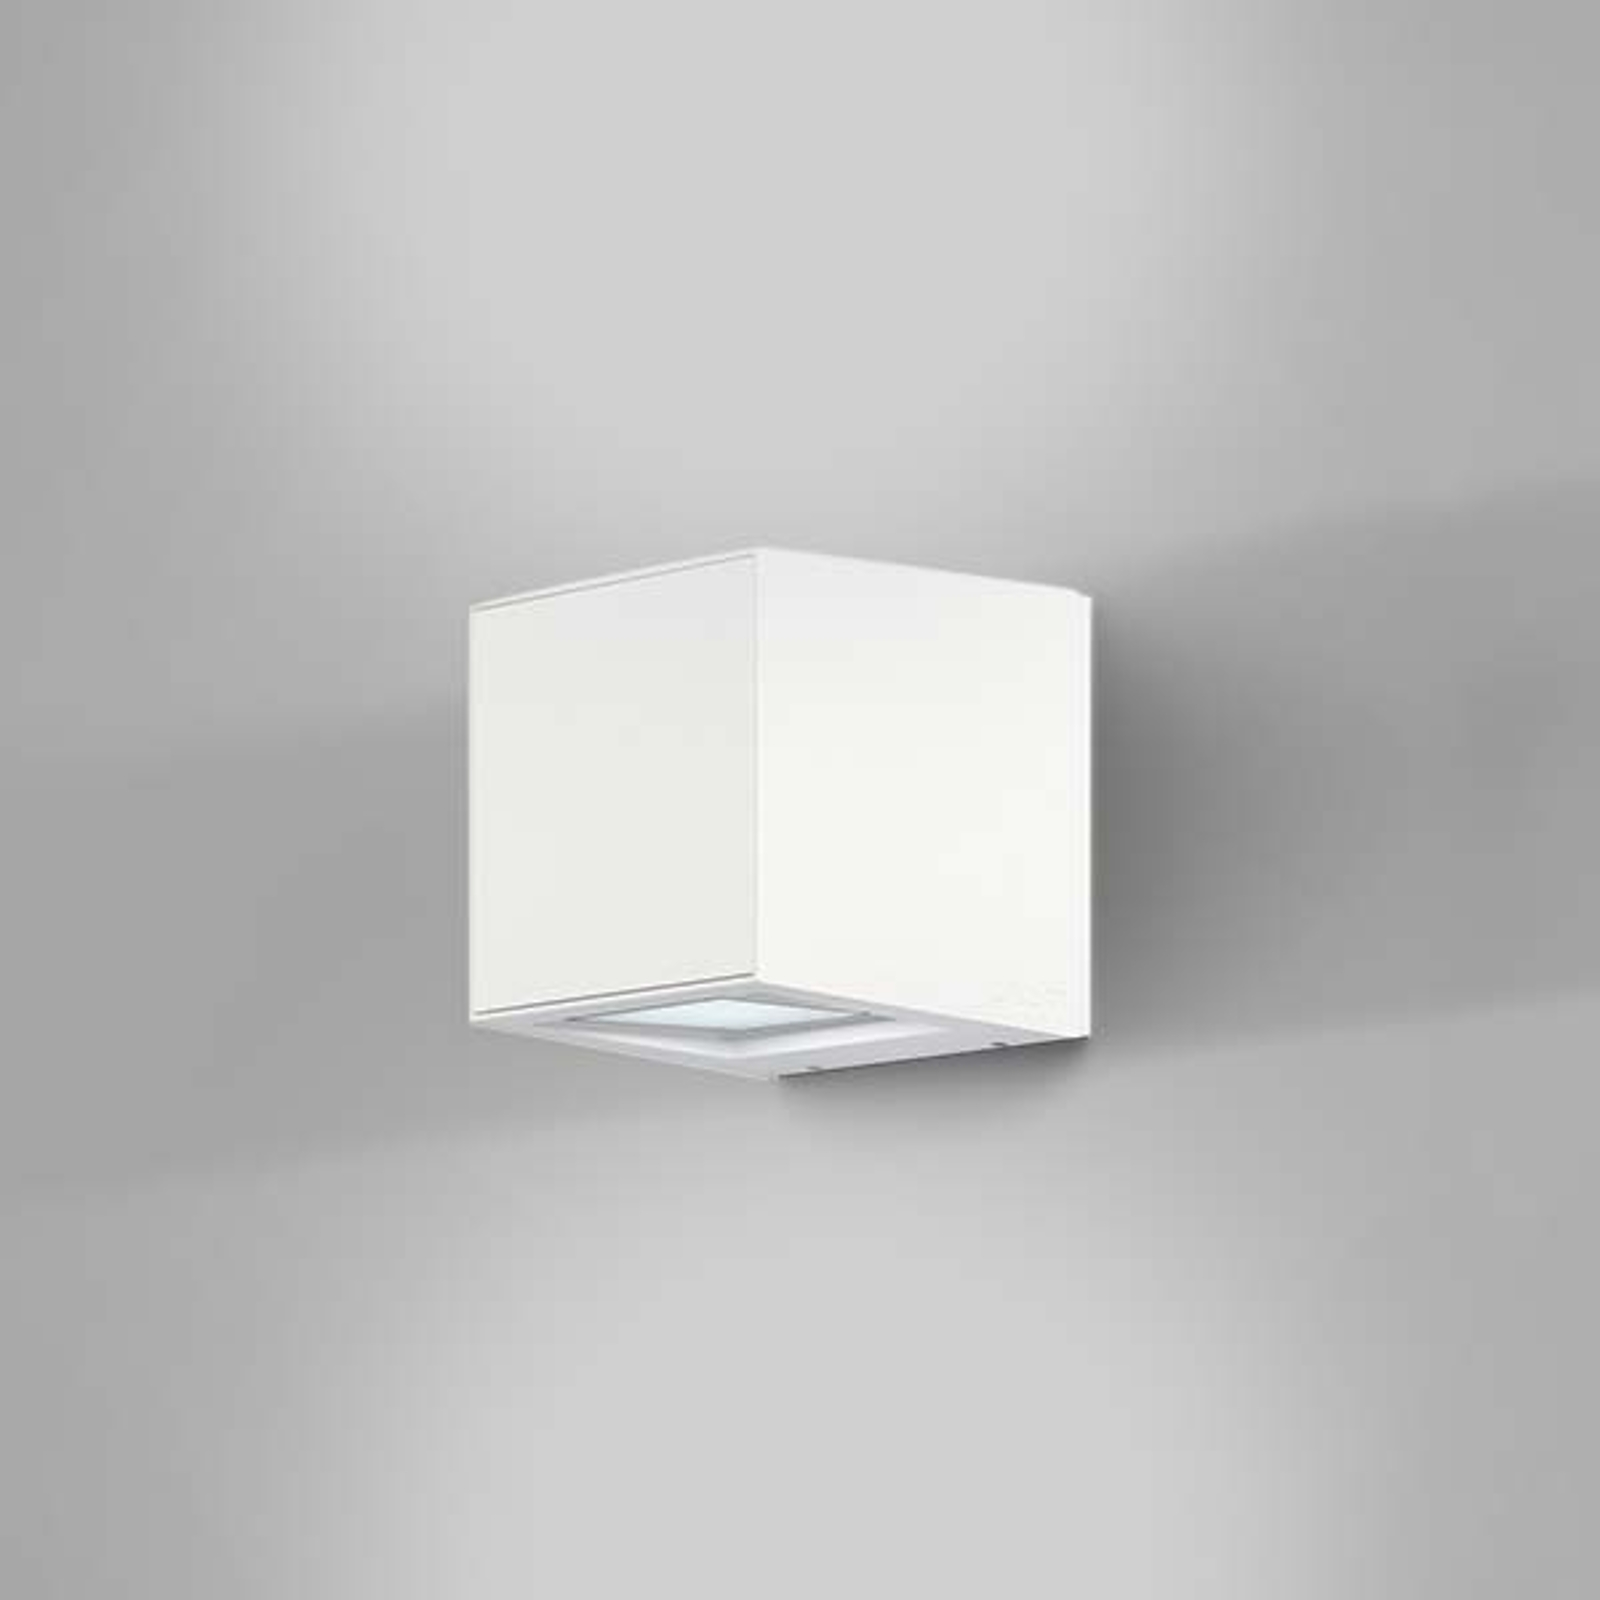 IP44.de Gap Q - LED buitenwandlamp, wit